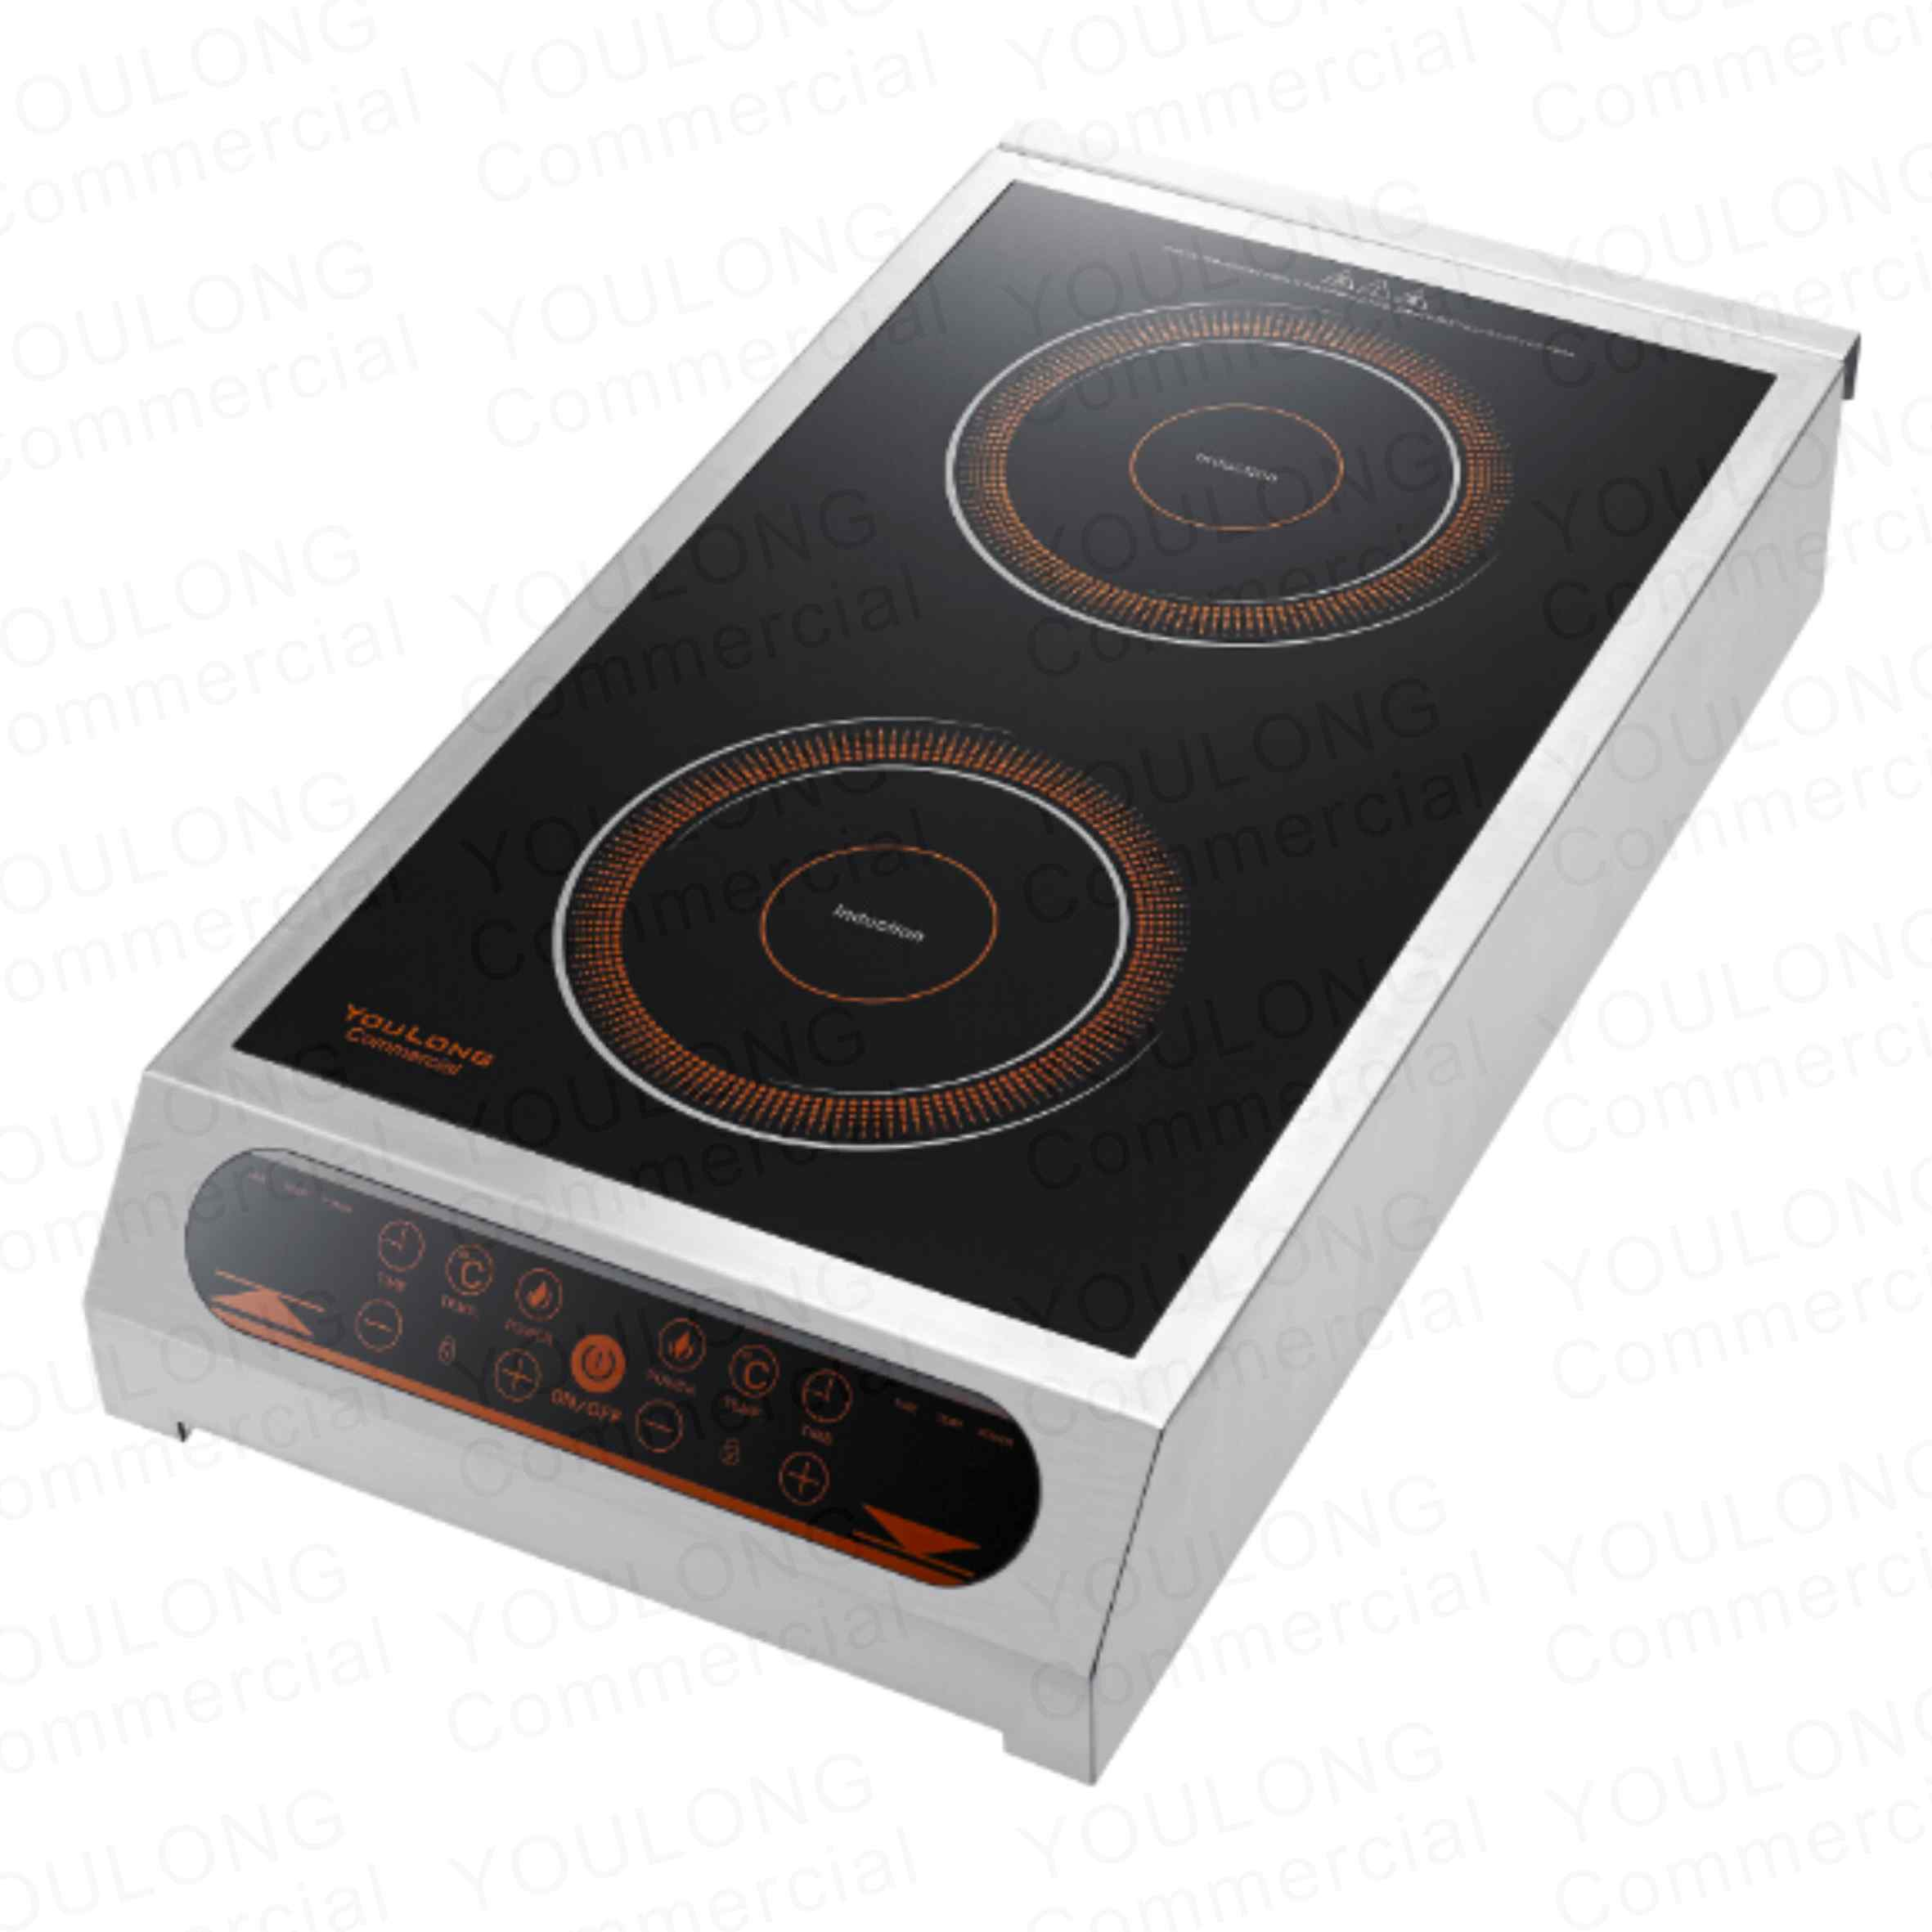 induction cooker(2 burner) C6001-S Touch Control